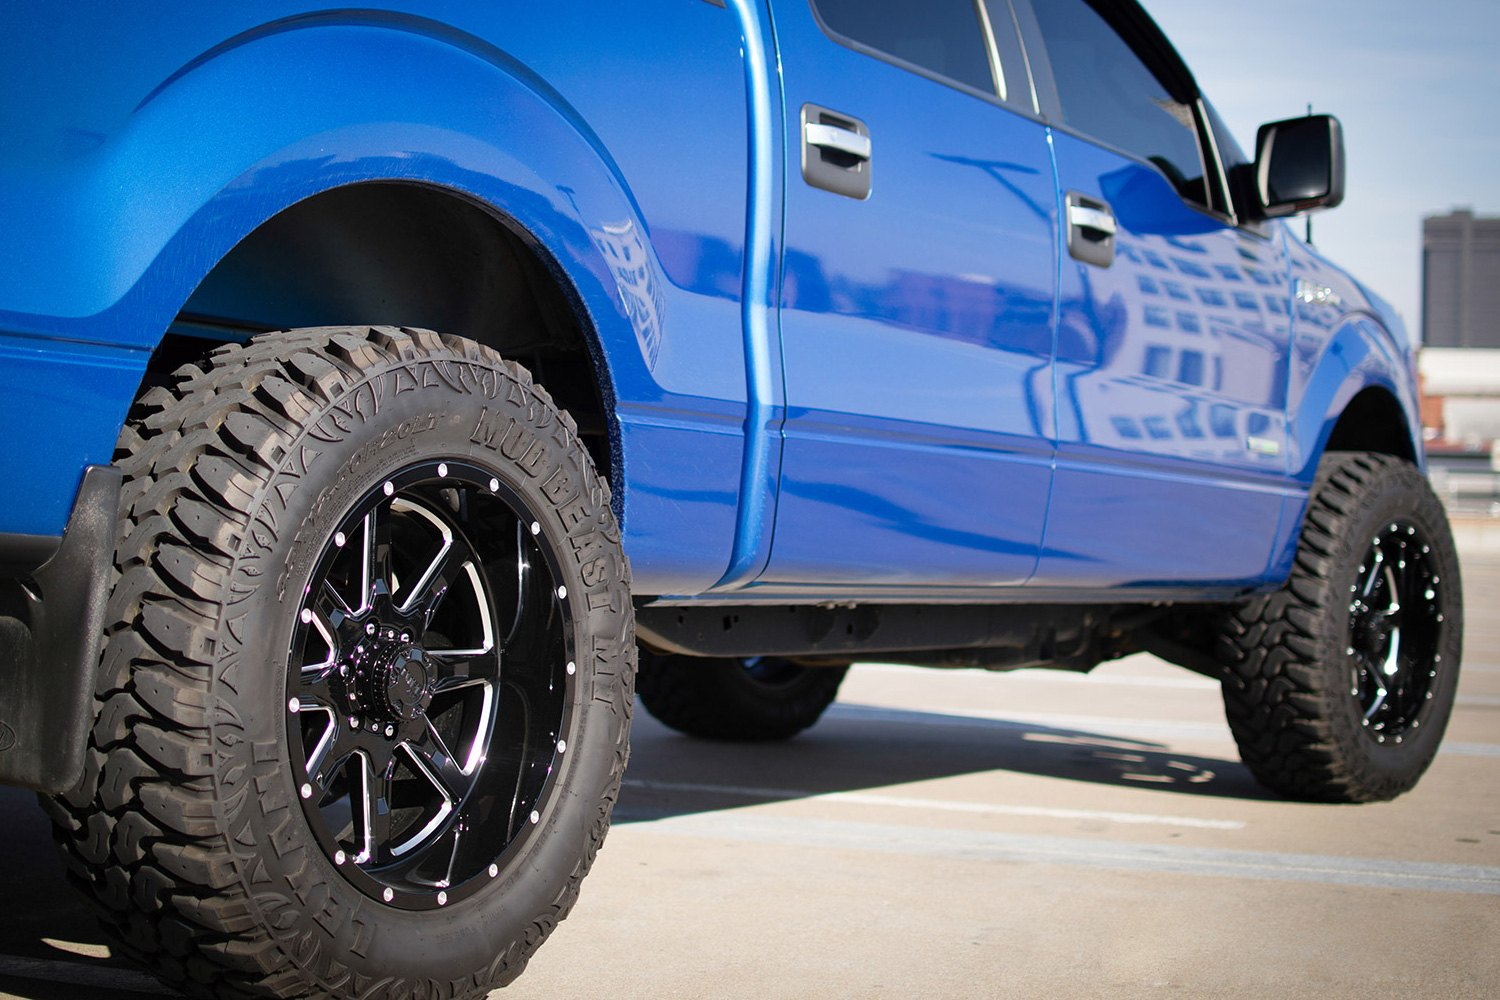 Ford Explorer Black Rims >> TUFF® T15 Wheels - Satin Black with Milled Accents Rims